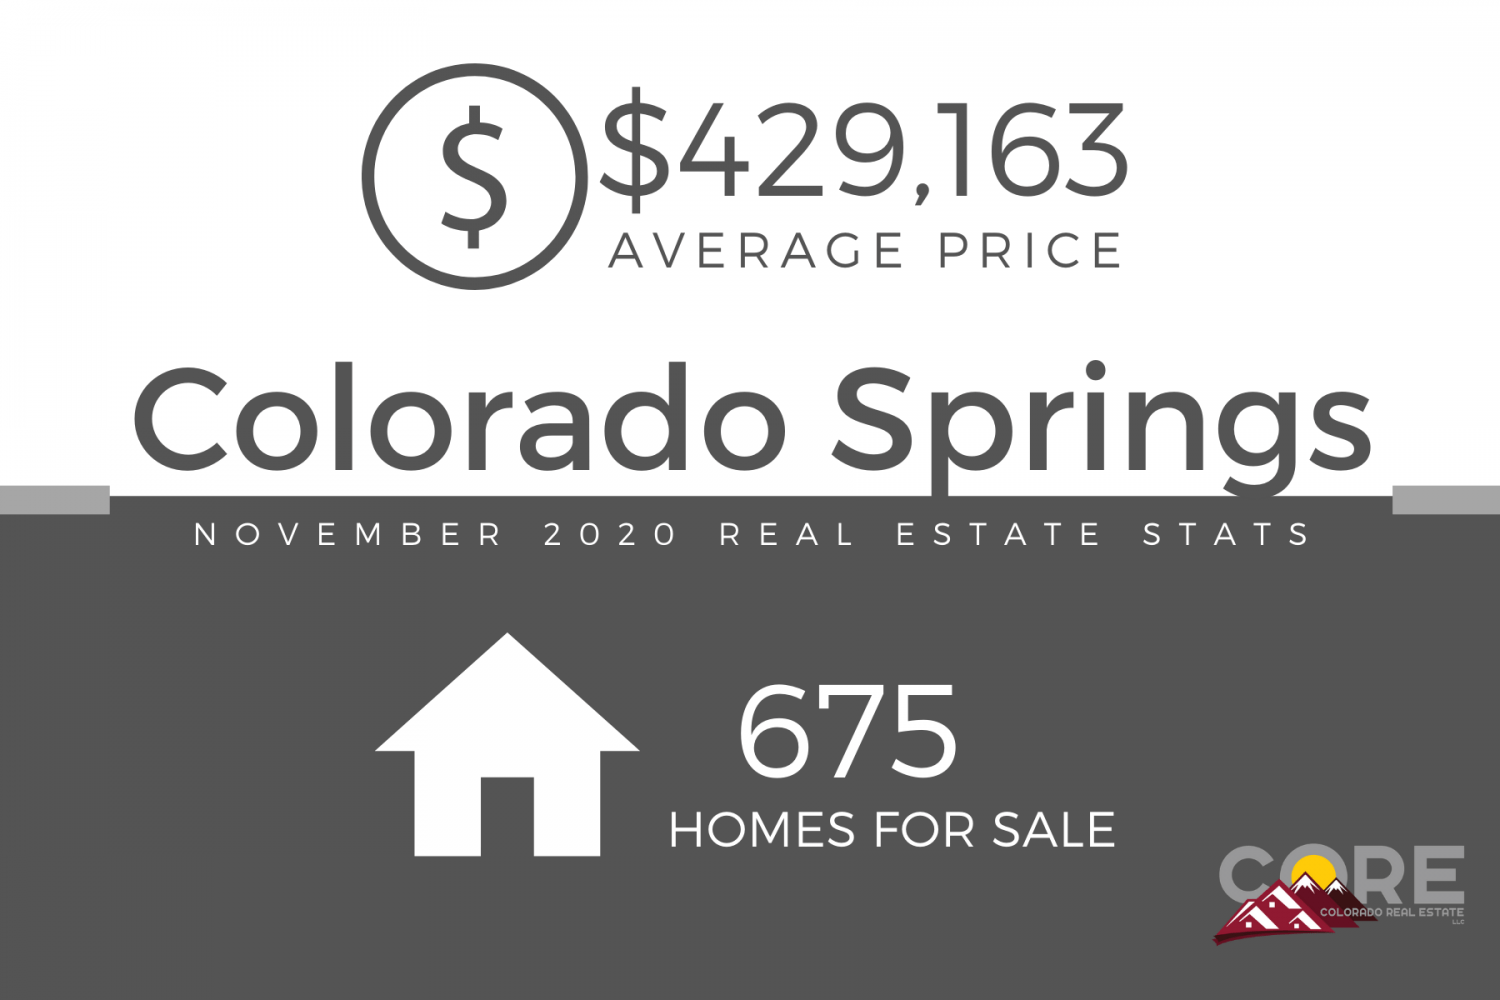 graphic of Colorado Springs real estate stats for December 2020